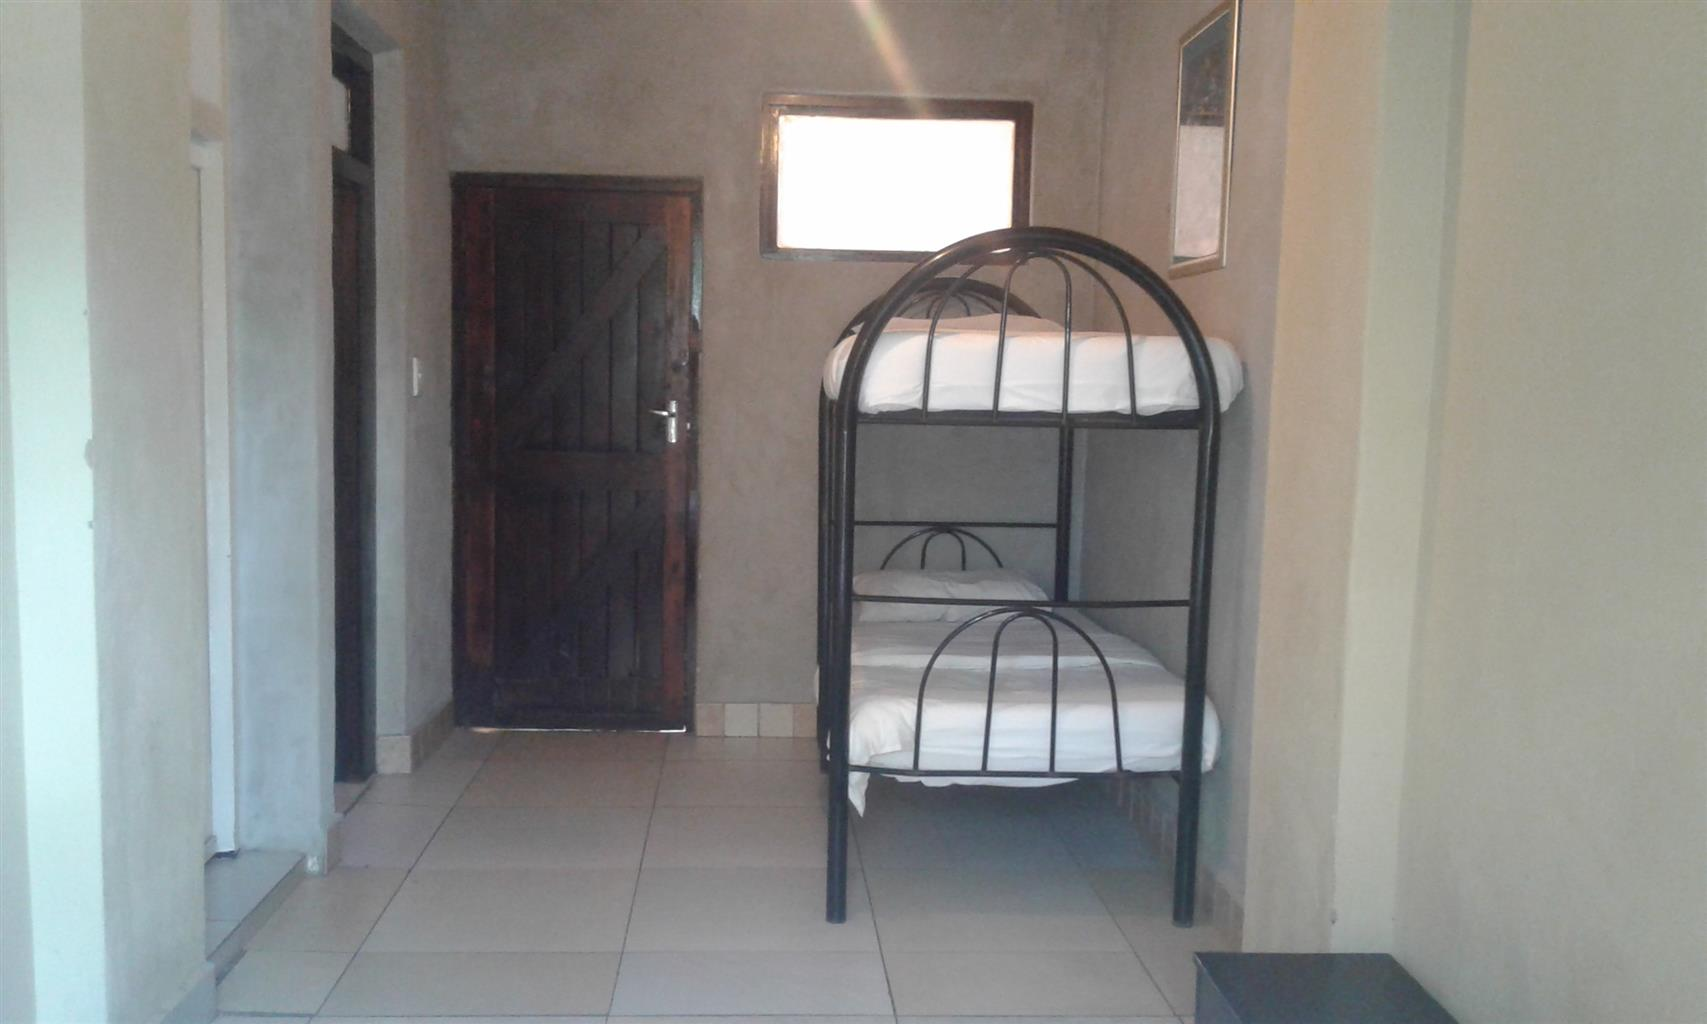 Students Accomodation in Johannesburg